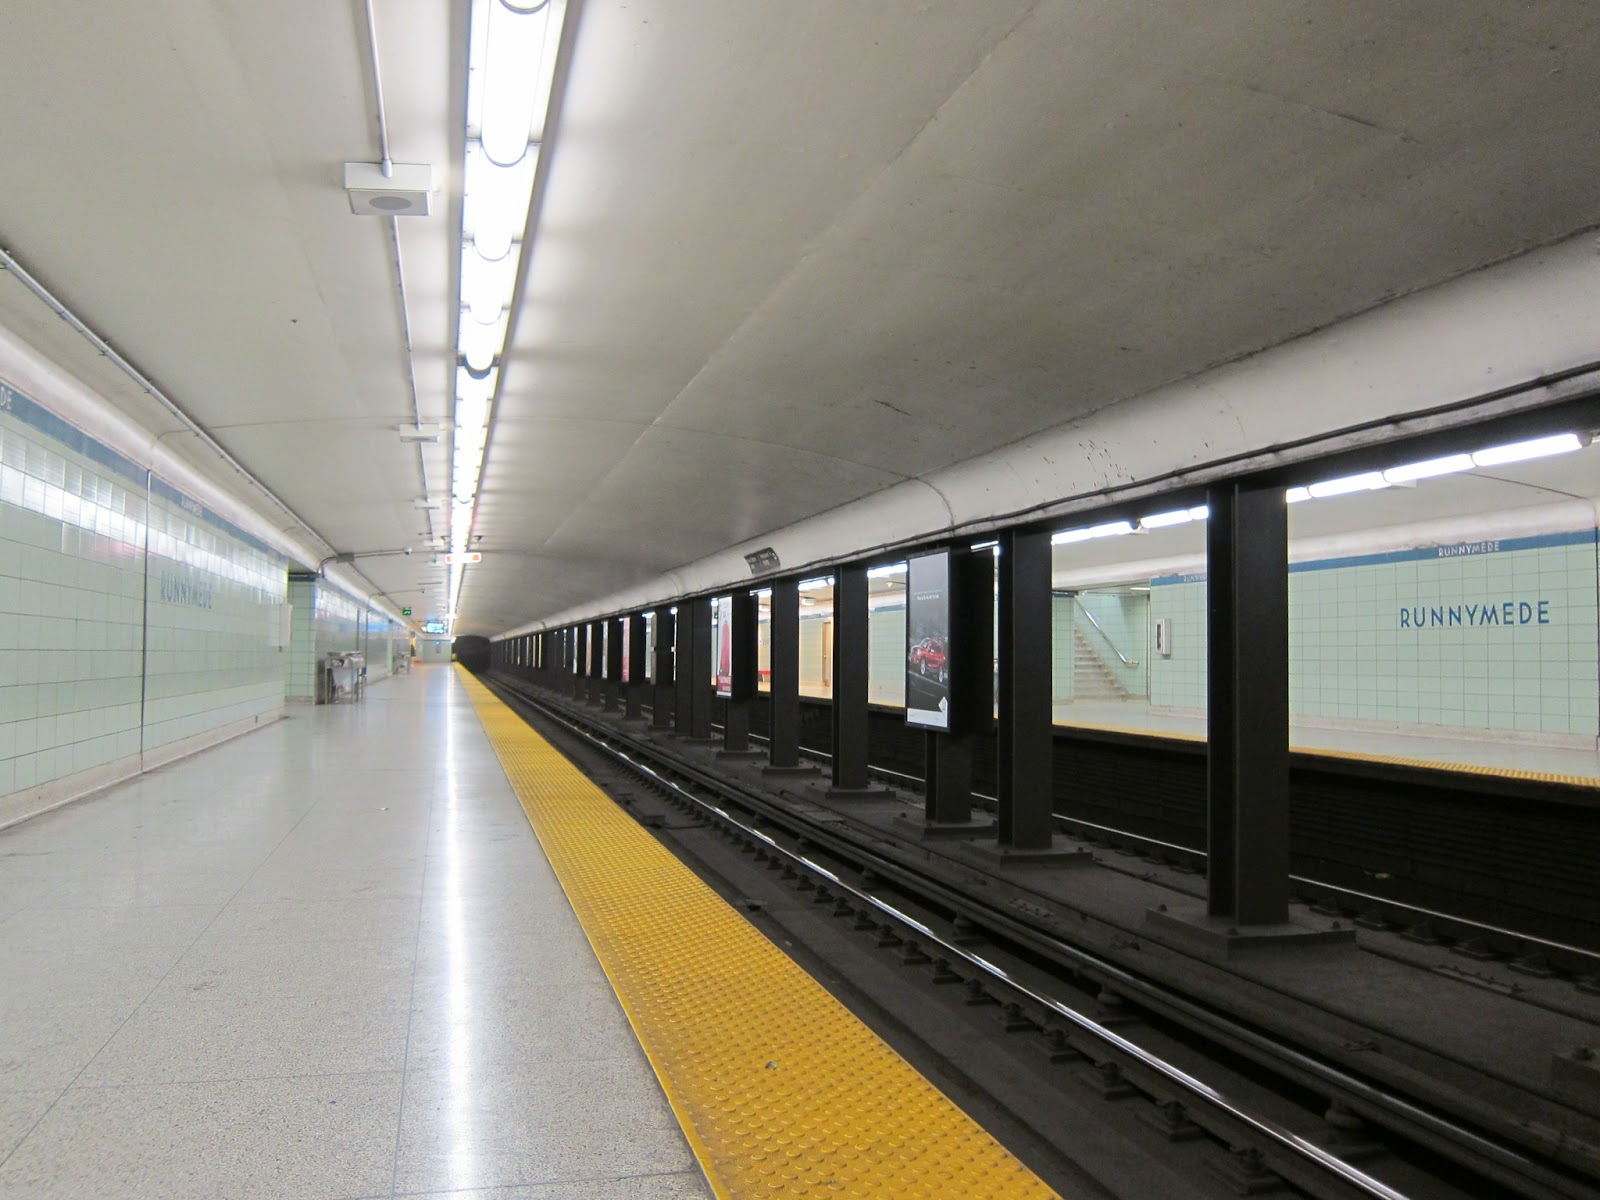 Runnymede subway station platform - longitudinal view